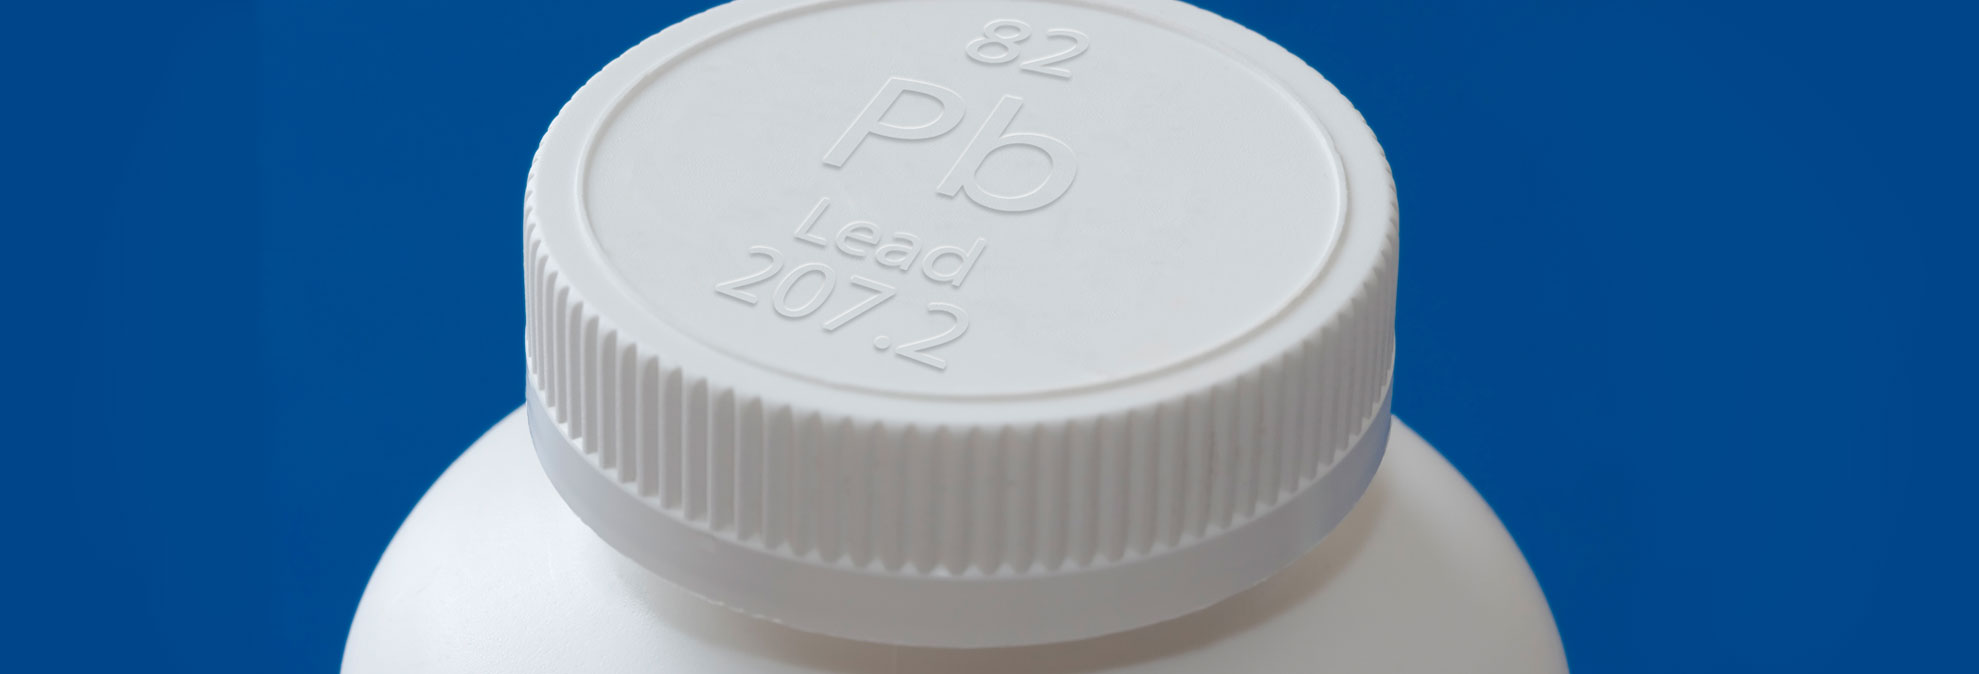 Fda Warns About Lead Poisoning From Dietary Supplements